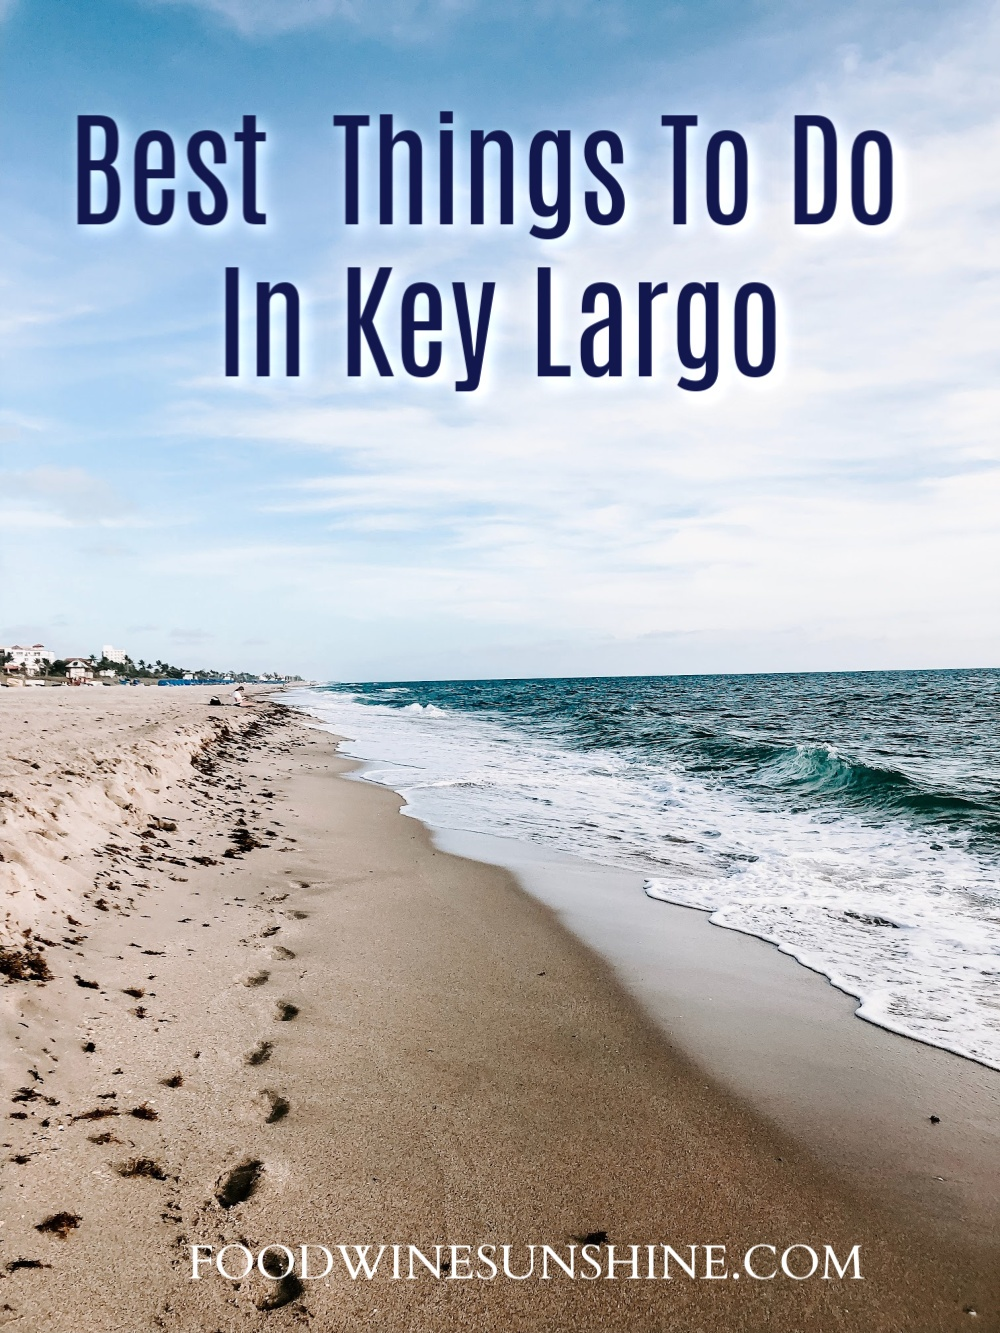 Family Things To Do In Key Largo